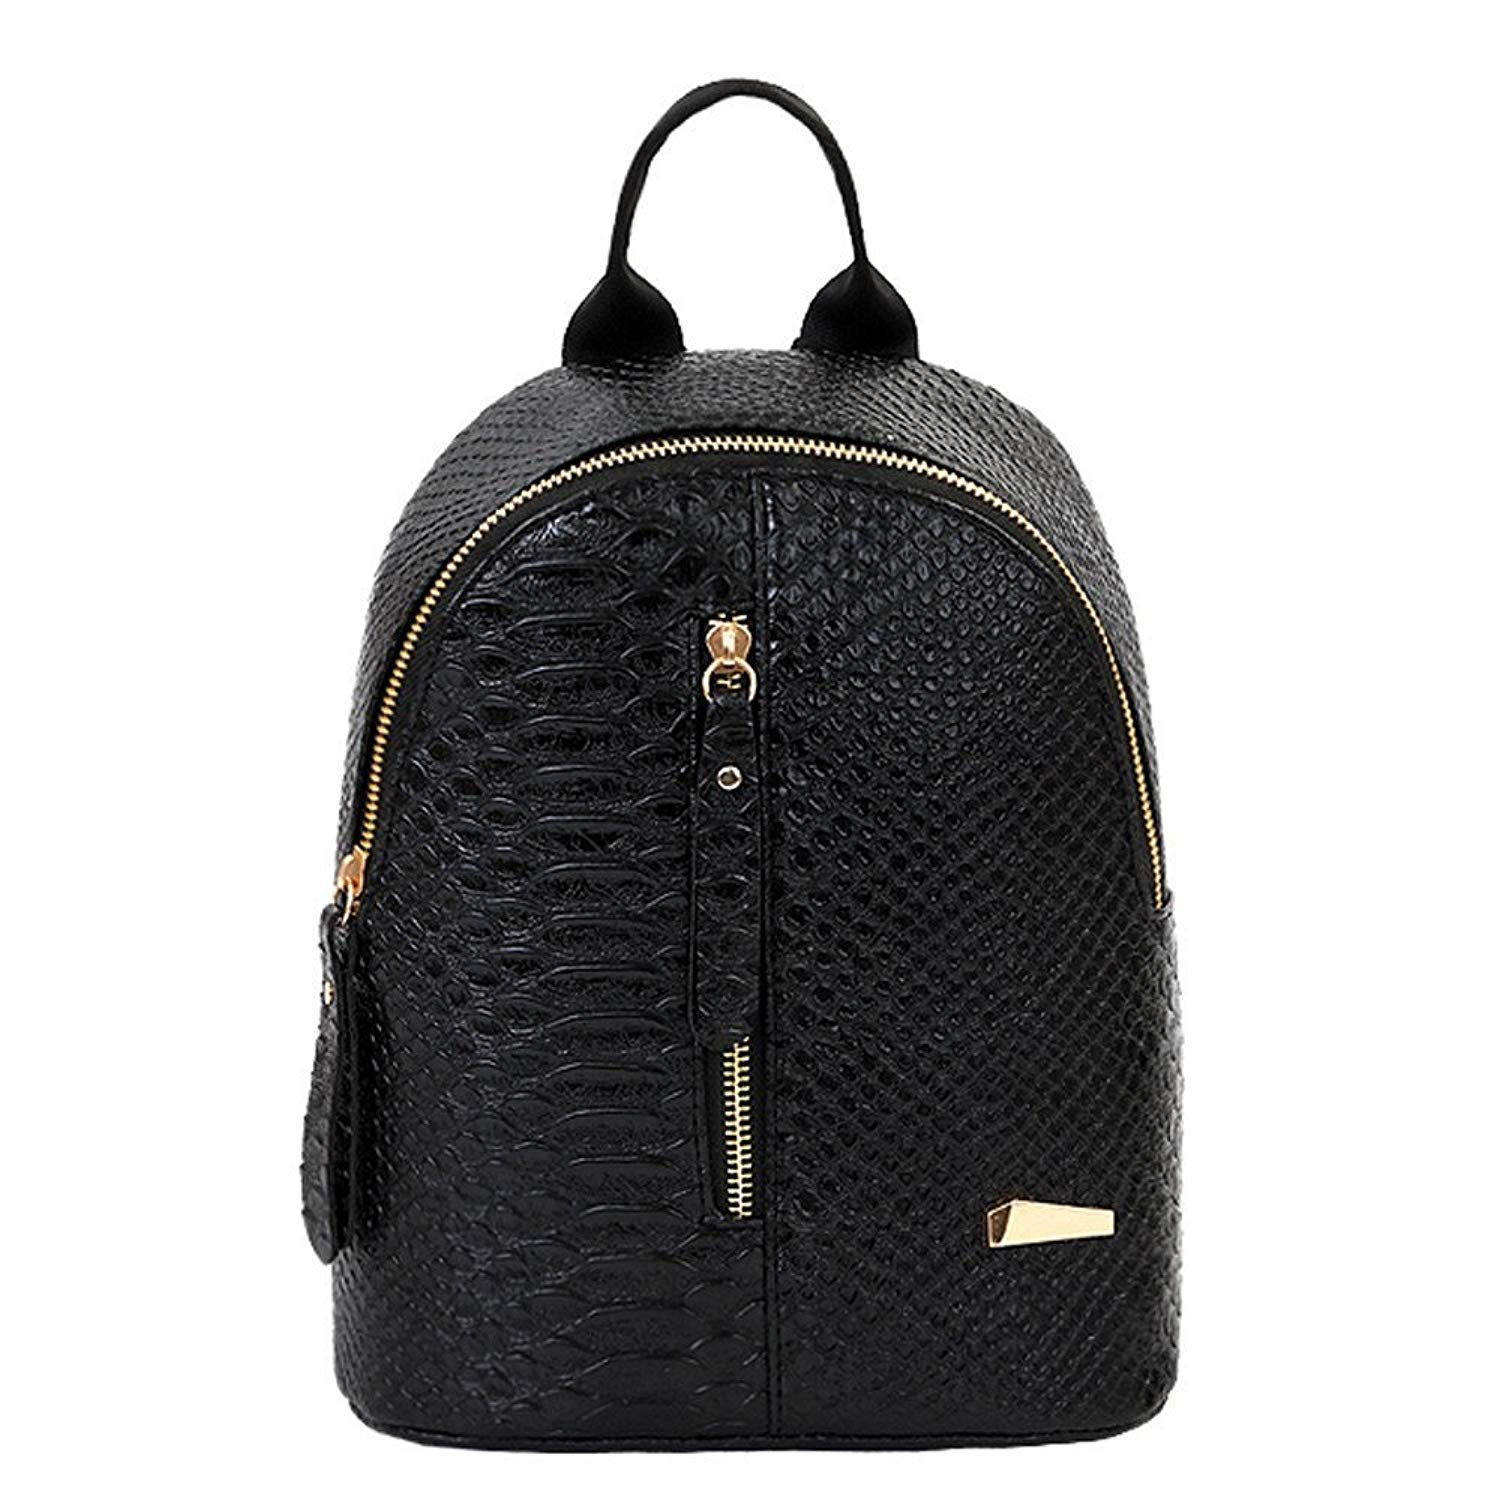 Liraly Gift Bags,Clearance Sale! Women Fashion Leather Backpacks School Bags Travel Shoulder Bag Cell Phone Bags